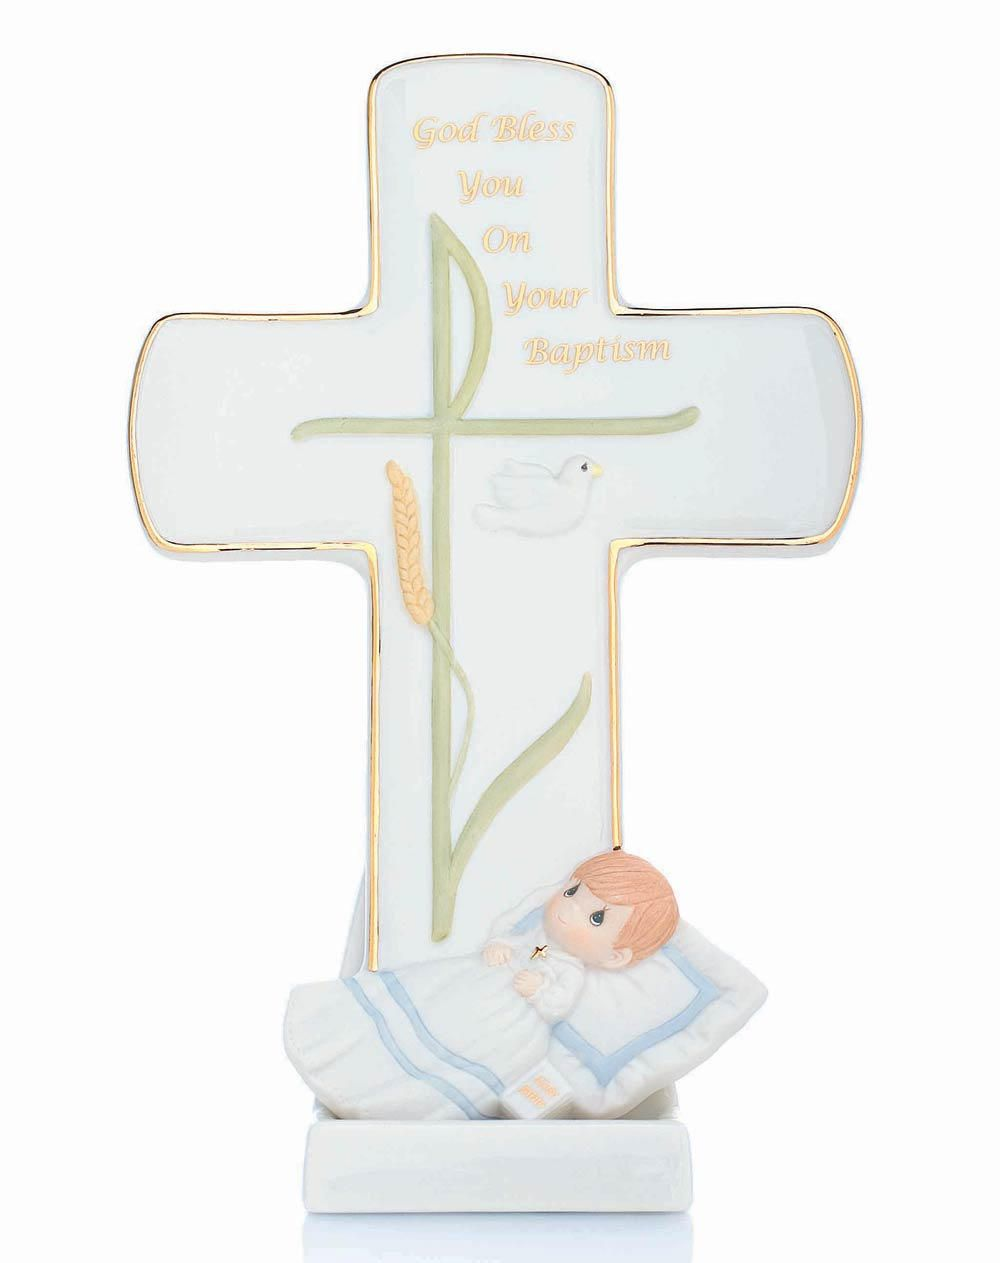 precious moments images clipart | Precious Moments Baptism ...